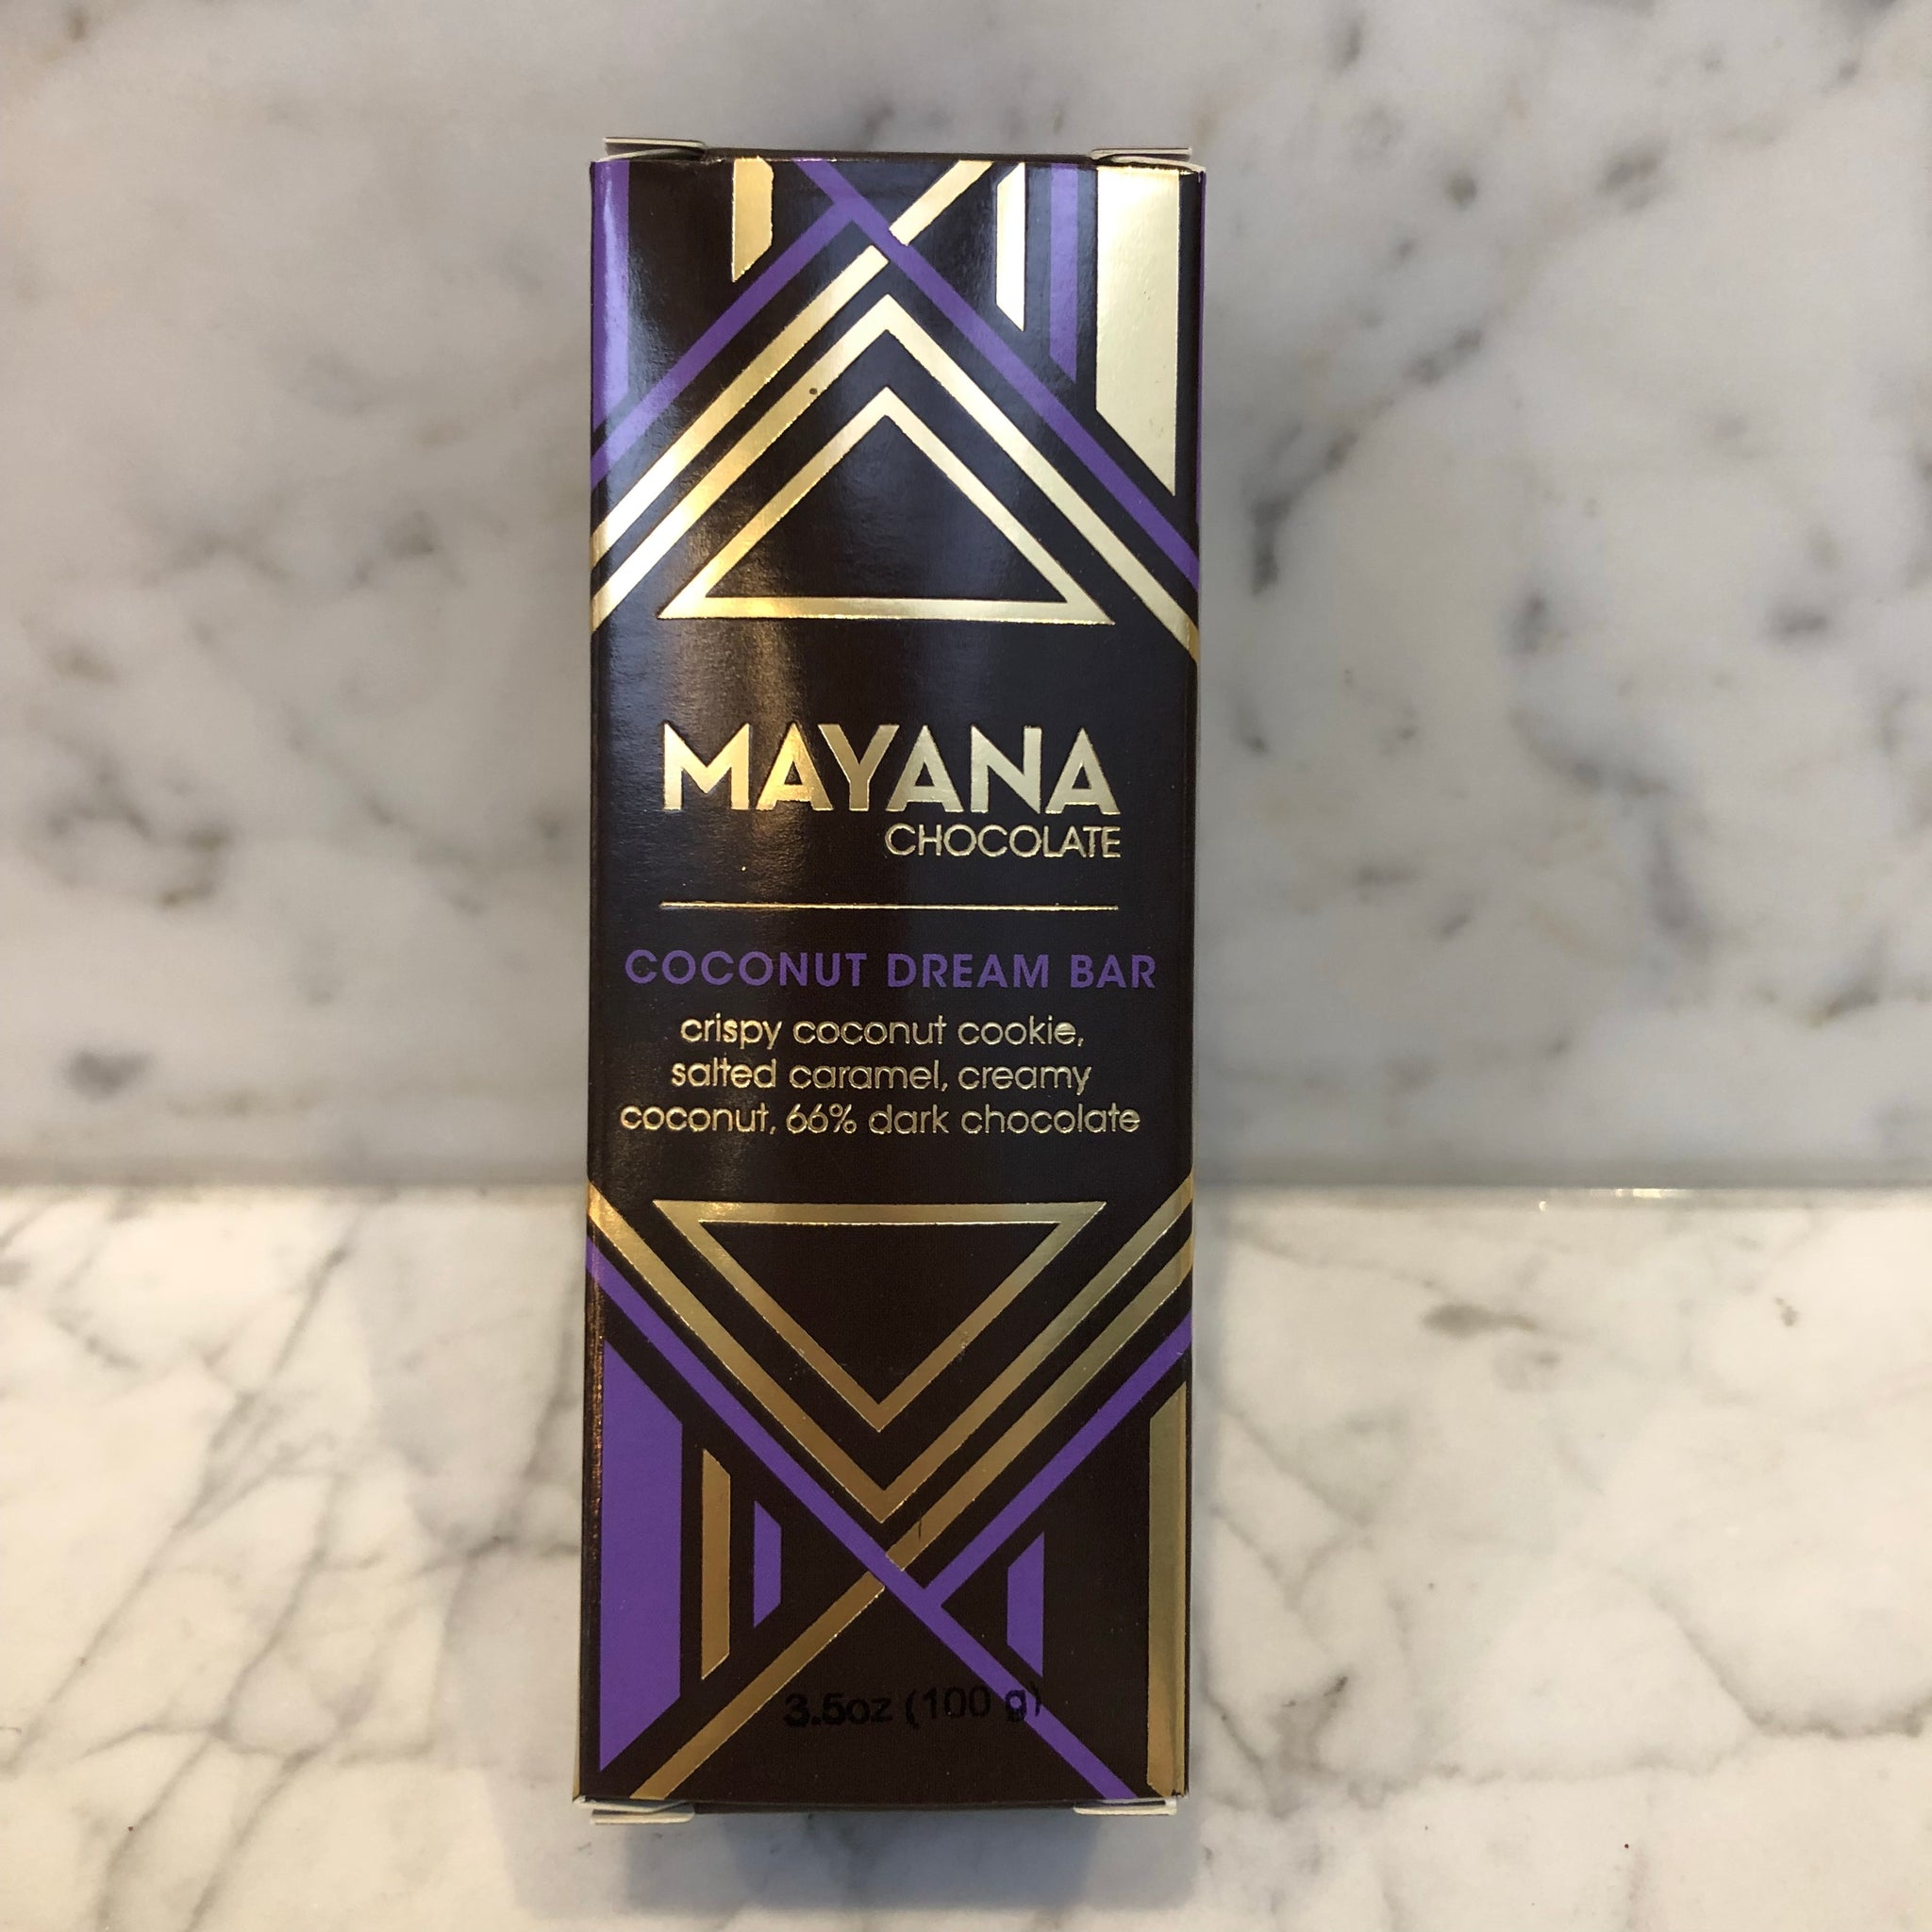 Mayana Coconut Dream Bar